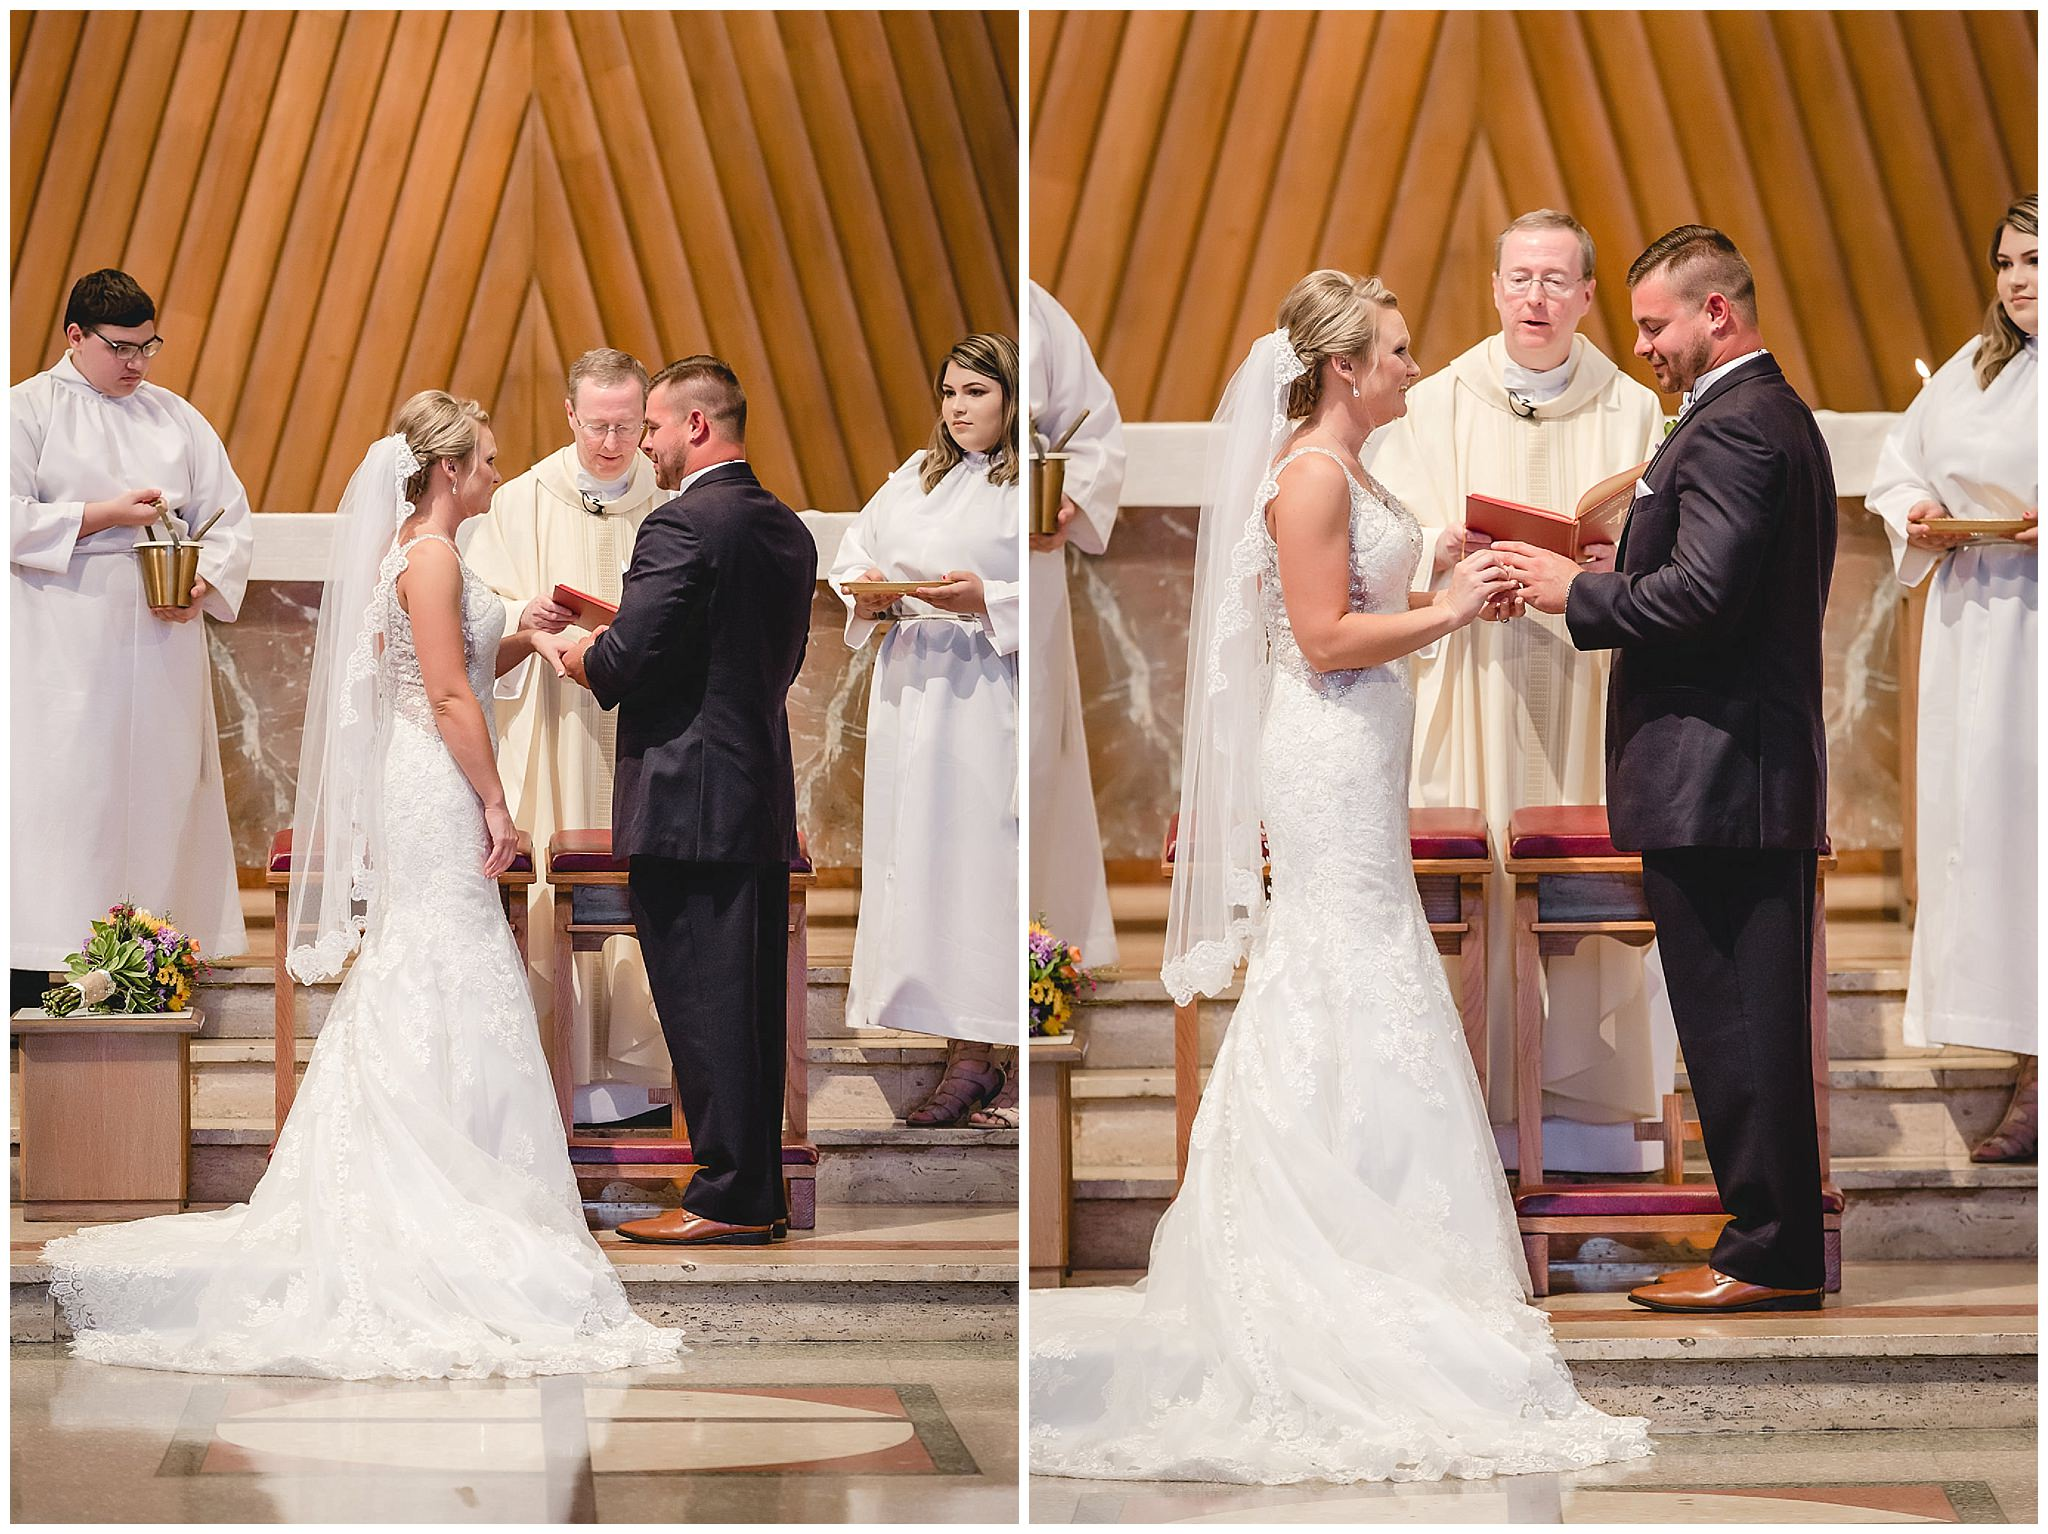 Bride and groom exchange rings during their ceremony at St. Titus Church